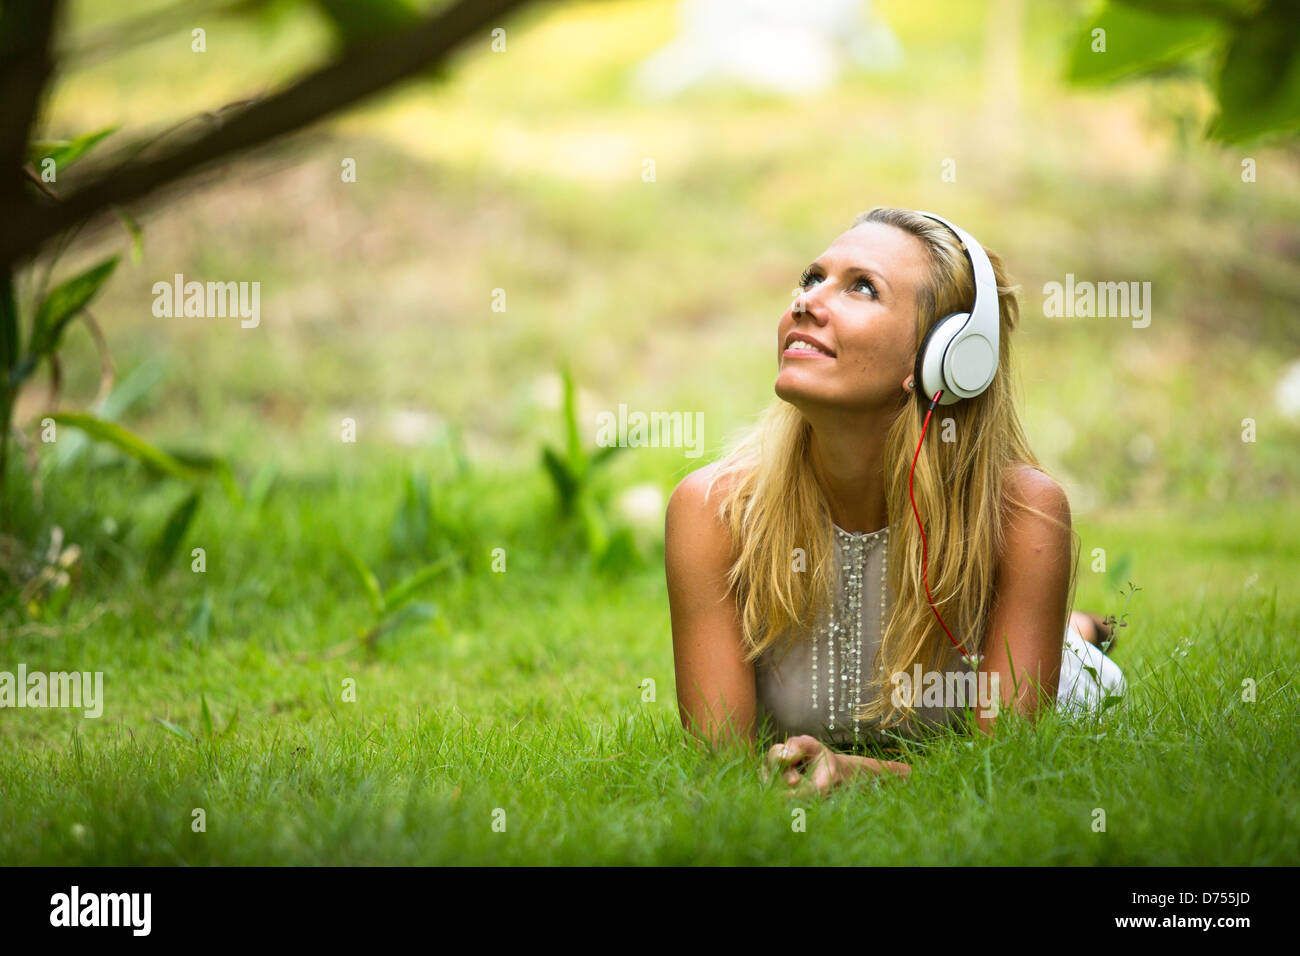 Lovely girl with headphones enjoying nature and music at sunny day. - Stock Image